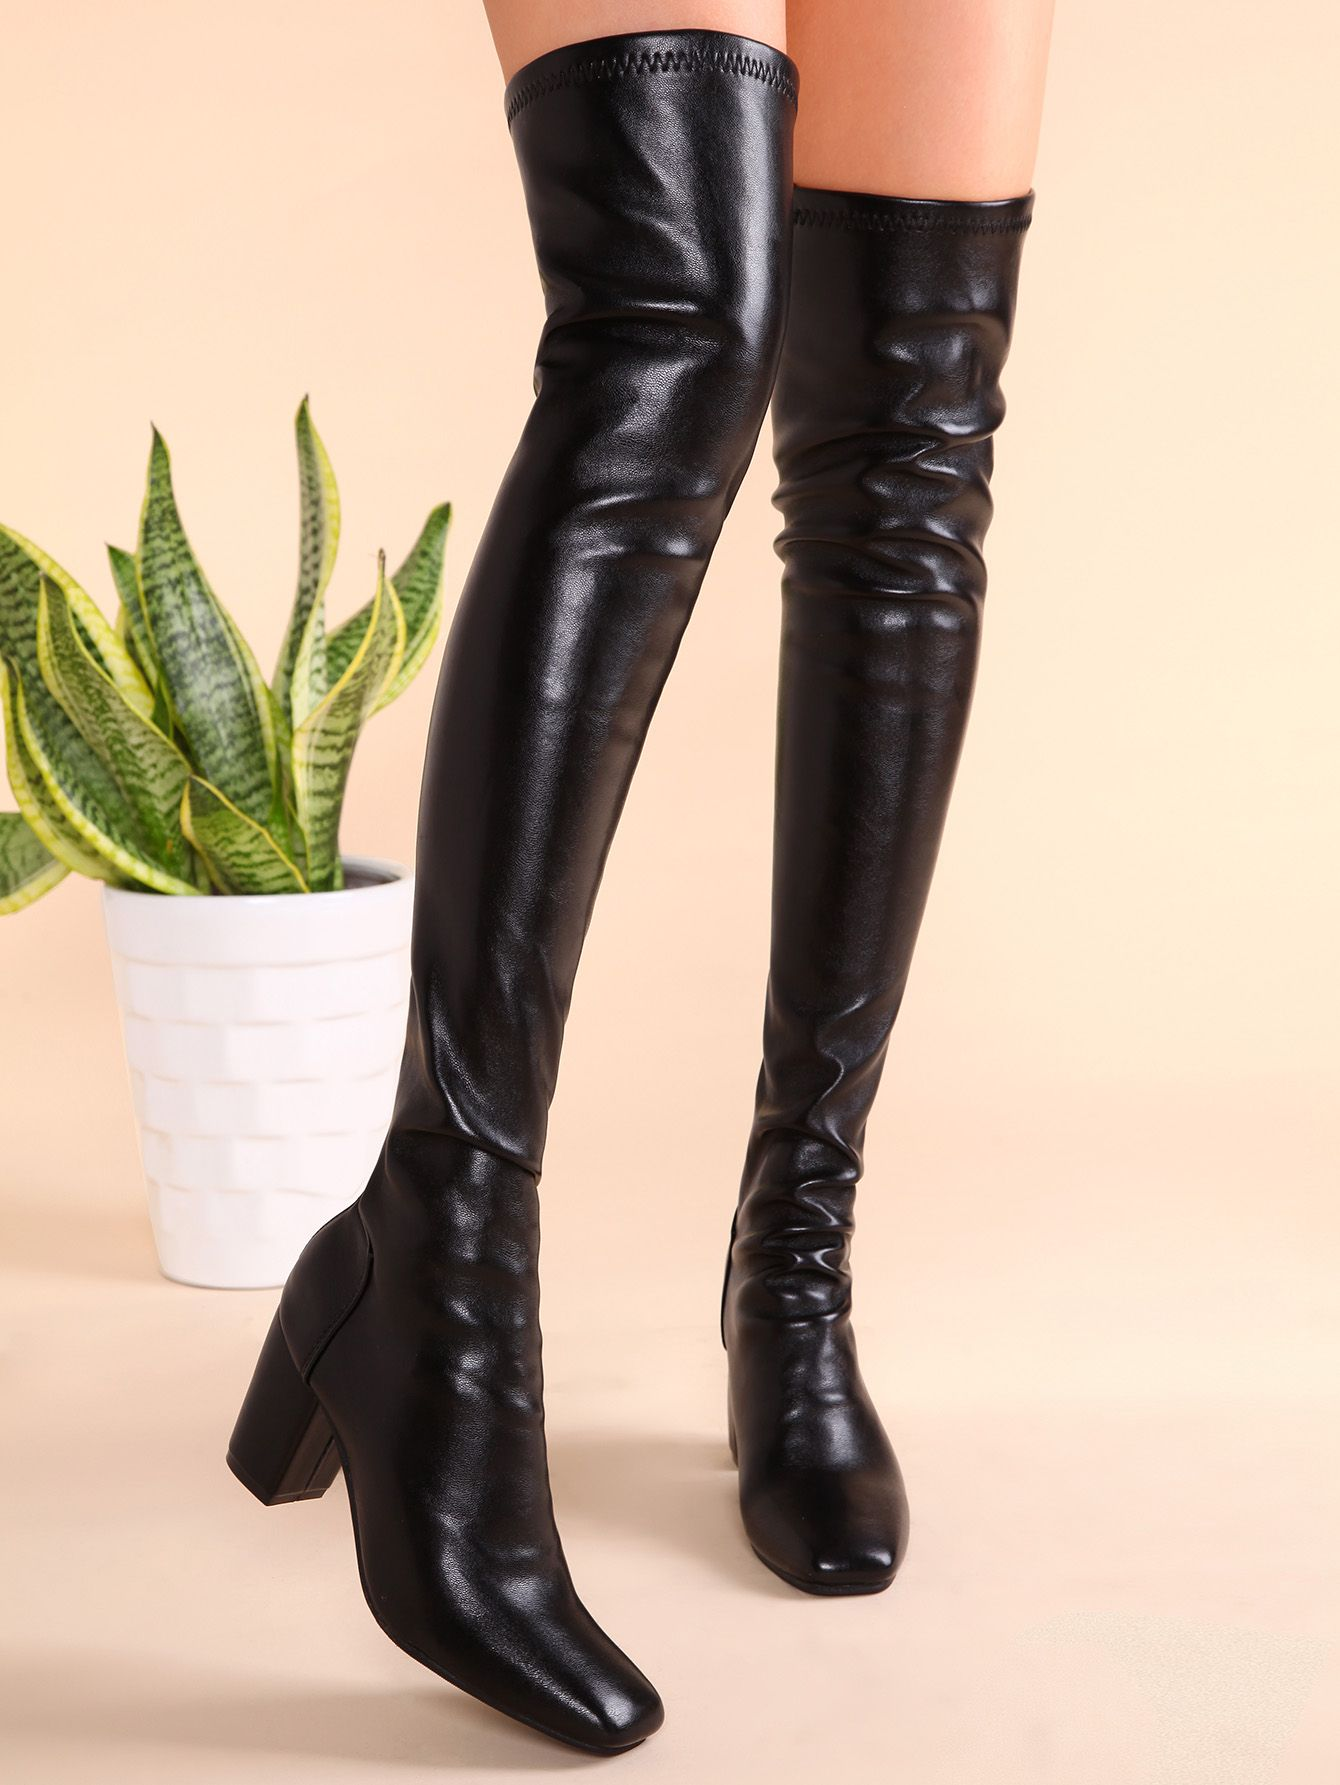 d2177e3013a Shop Black PU Square Toe Back Zipper Chunky Heel Thigh High Boots online.  SheIn offers Black PU Square Toe Back Zipper Chunky Heel Thigh High Boots    more ...